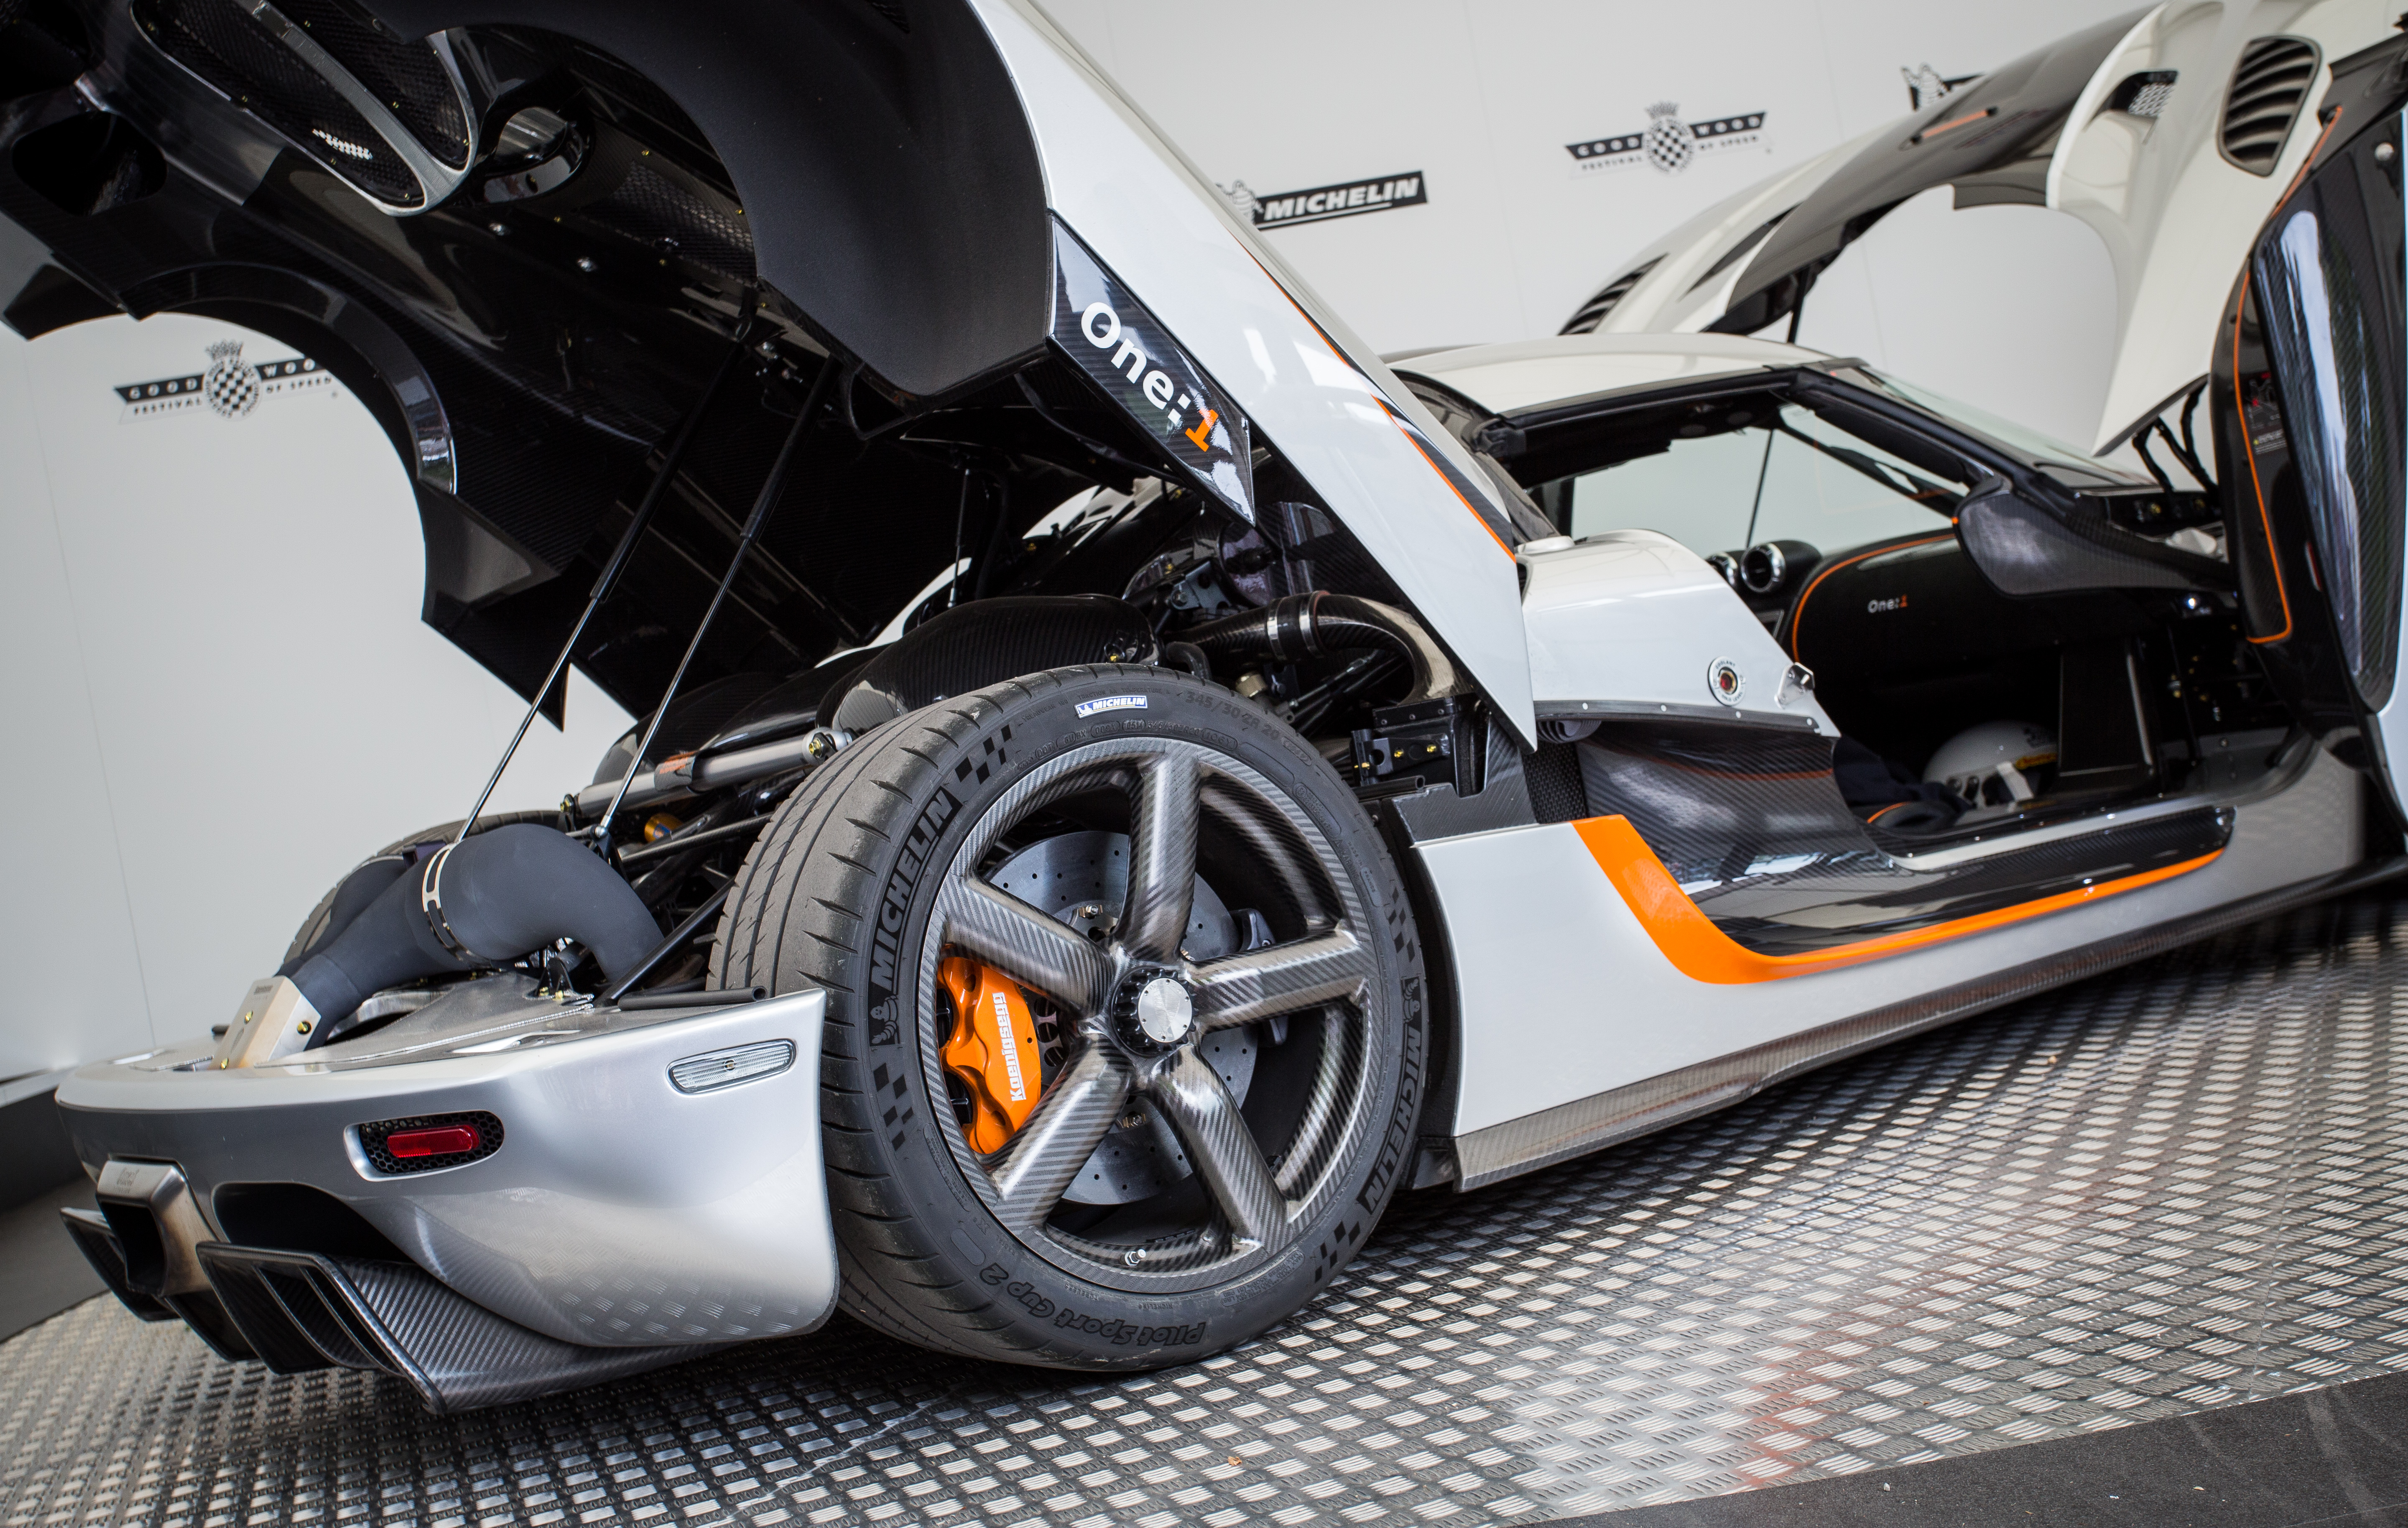 Koenigsegg One 1 >> File:Koenigsegg (Agera) One-1 at Goodwood 2014 005.jpg - Wikimedia Commons